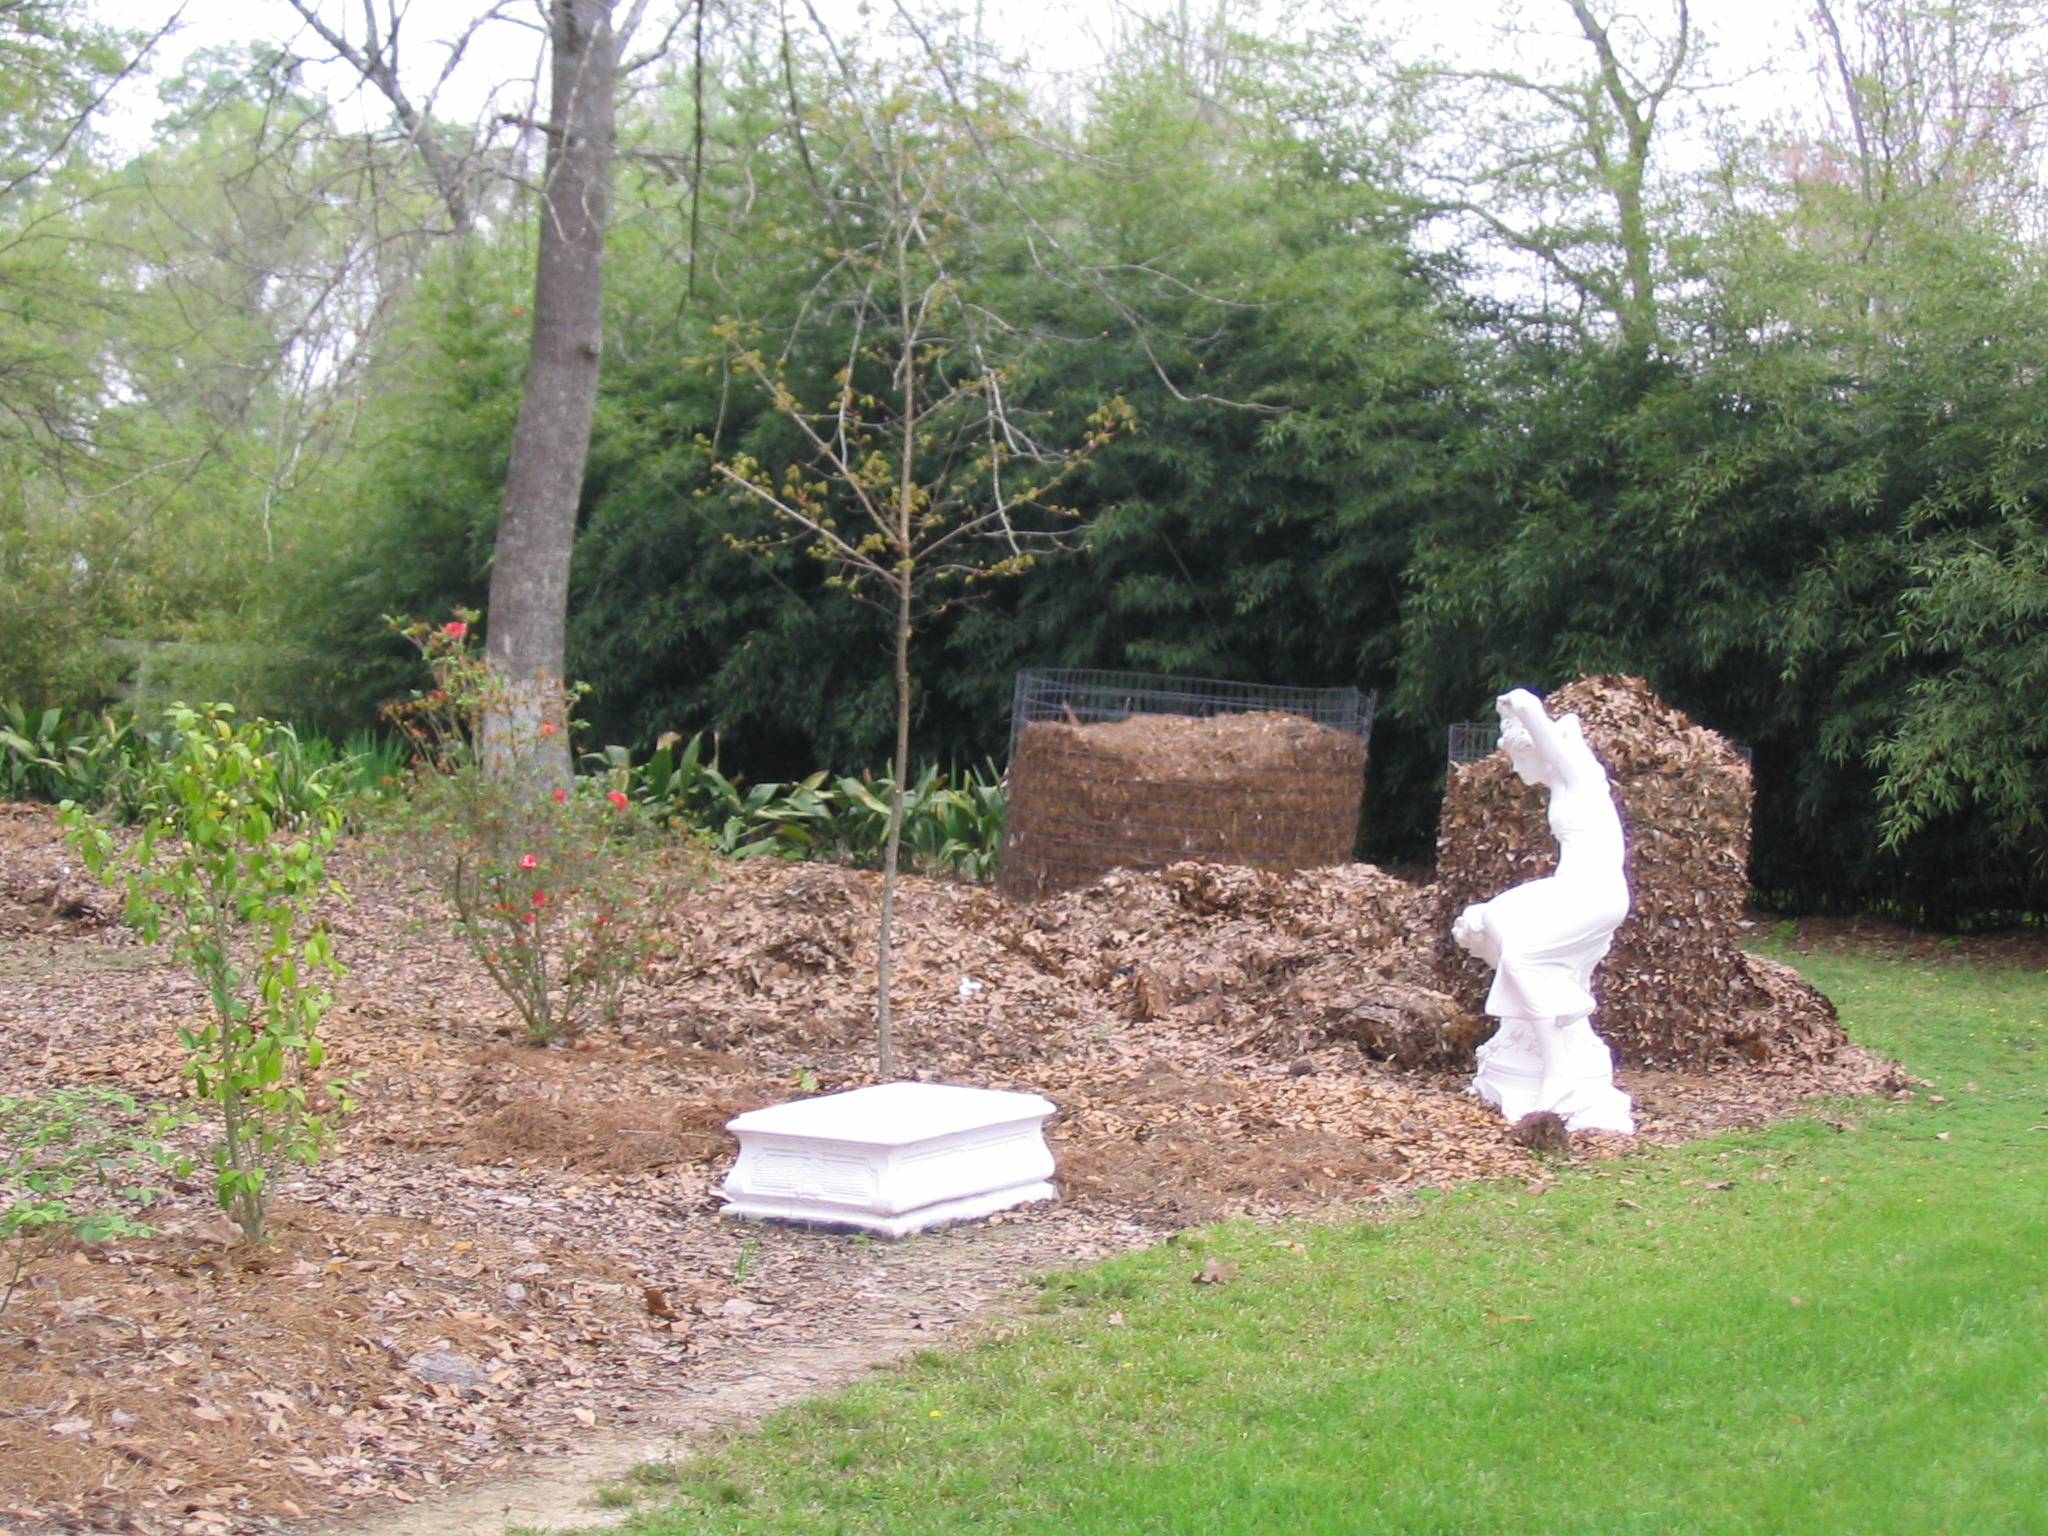 compost in landscape.JPG thumbnail